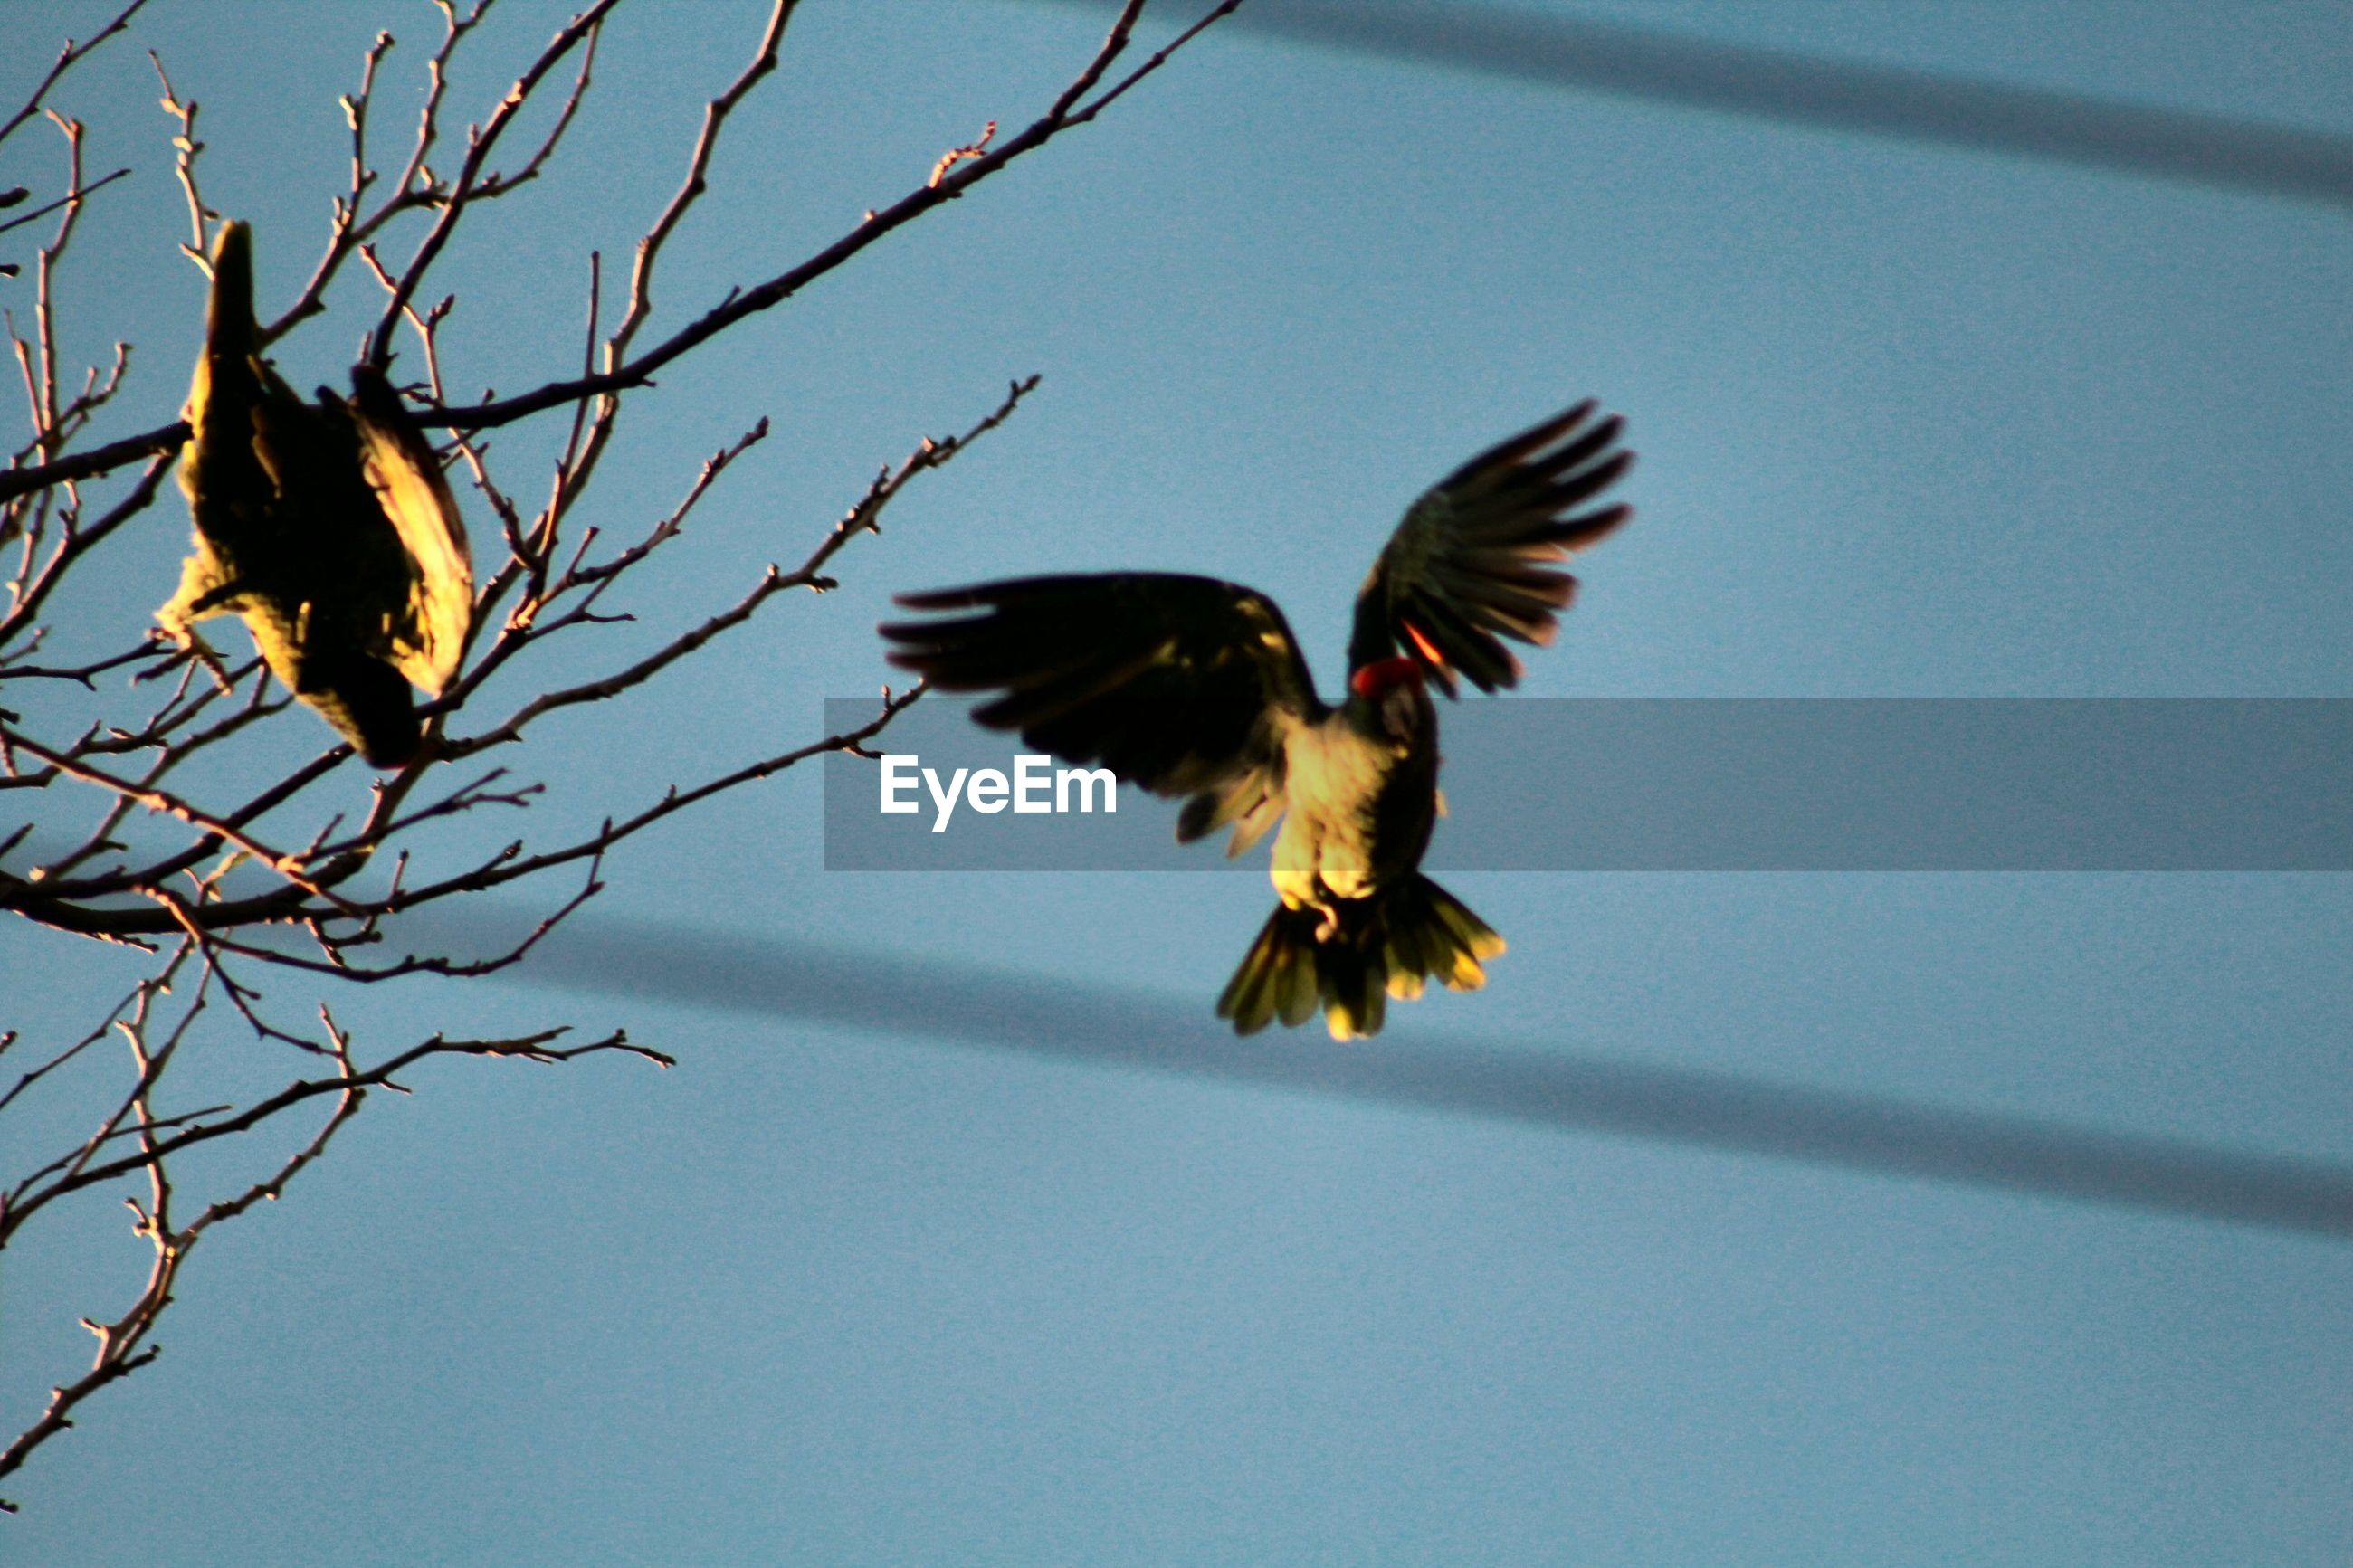 bird, animal themes, flying, animals in the wild, one animal, spread wings, wildlife, clear sky, low angle view, nature, zoology, blue, mid-air, branch, beauty in nature, outdoors, flight, day, focus on foreground, no people